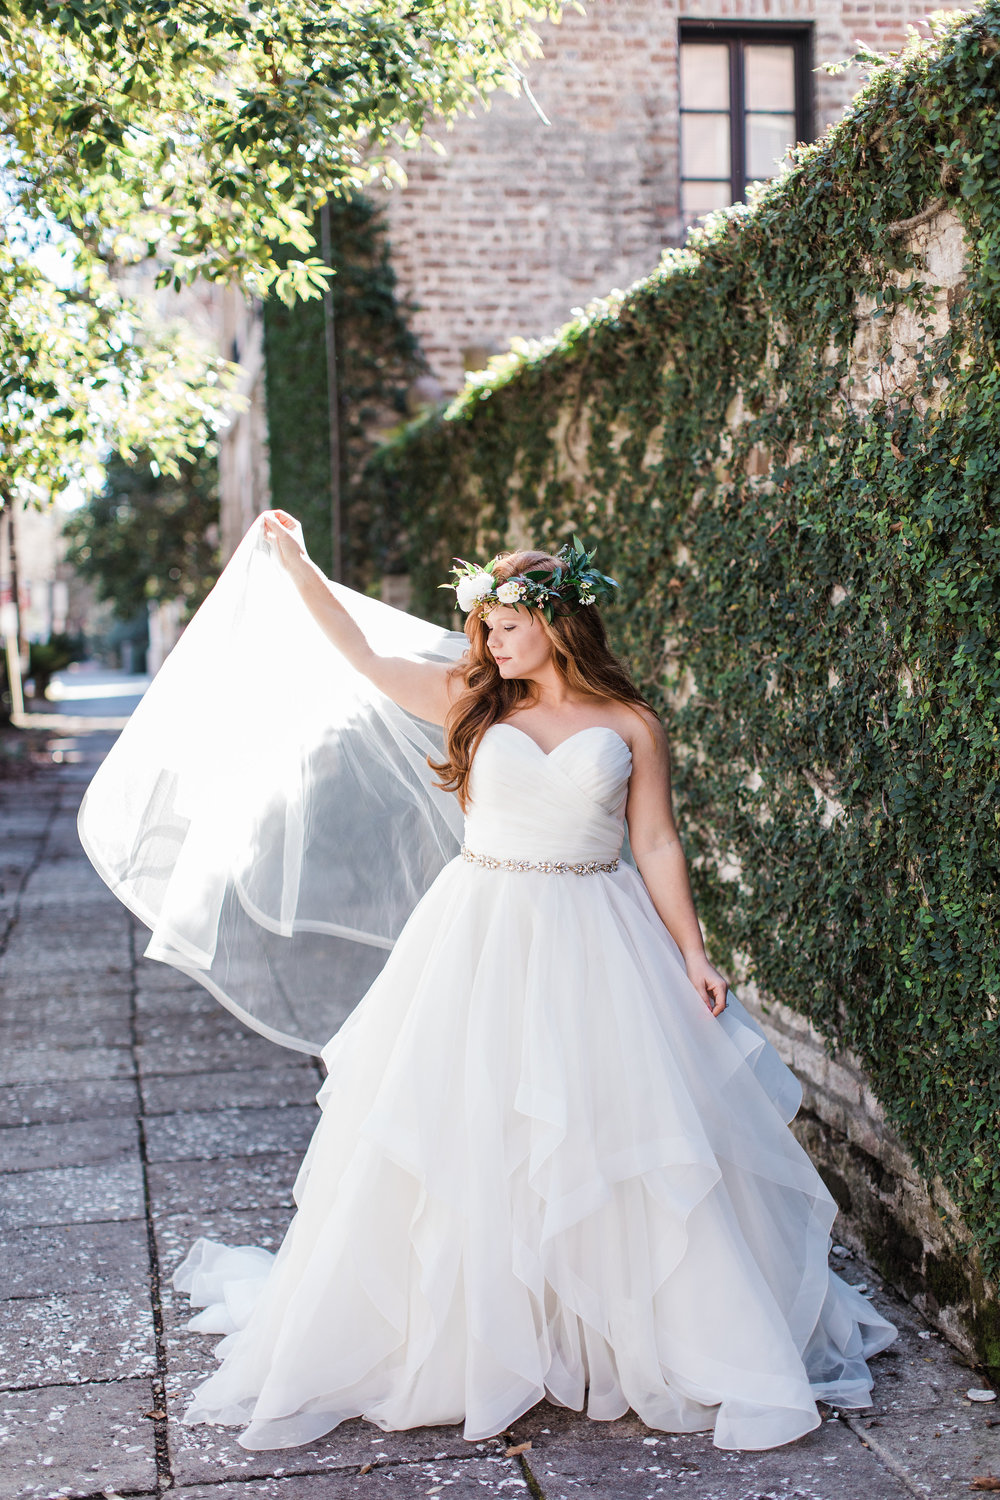 apt-b-photography-mary-elizabeths-bridal-boutique-adele-amelia-accessories-morilee-5504-savannah-bridal-boutique-savannah-weddings-savannah-wedding-photographer-savannah-bridal-gowns-savannah-wedding-dresses-historic-savannah-wedding-3.jpg